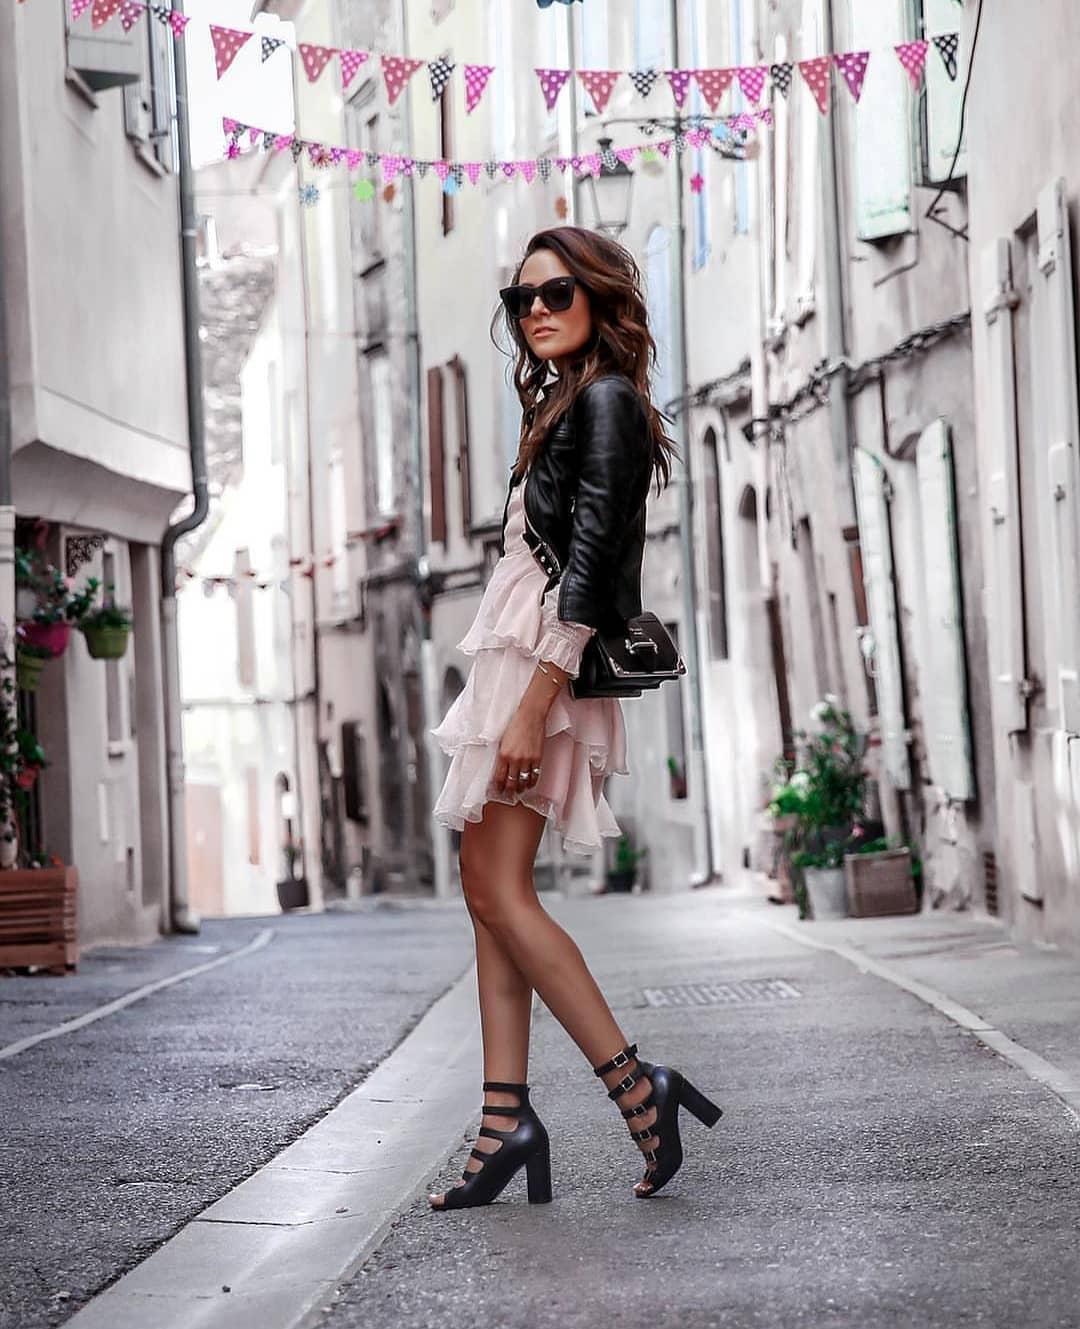 Can I Style Black Leather Jacket With Mini Ruffled Dress And Buckled Heels 2020